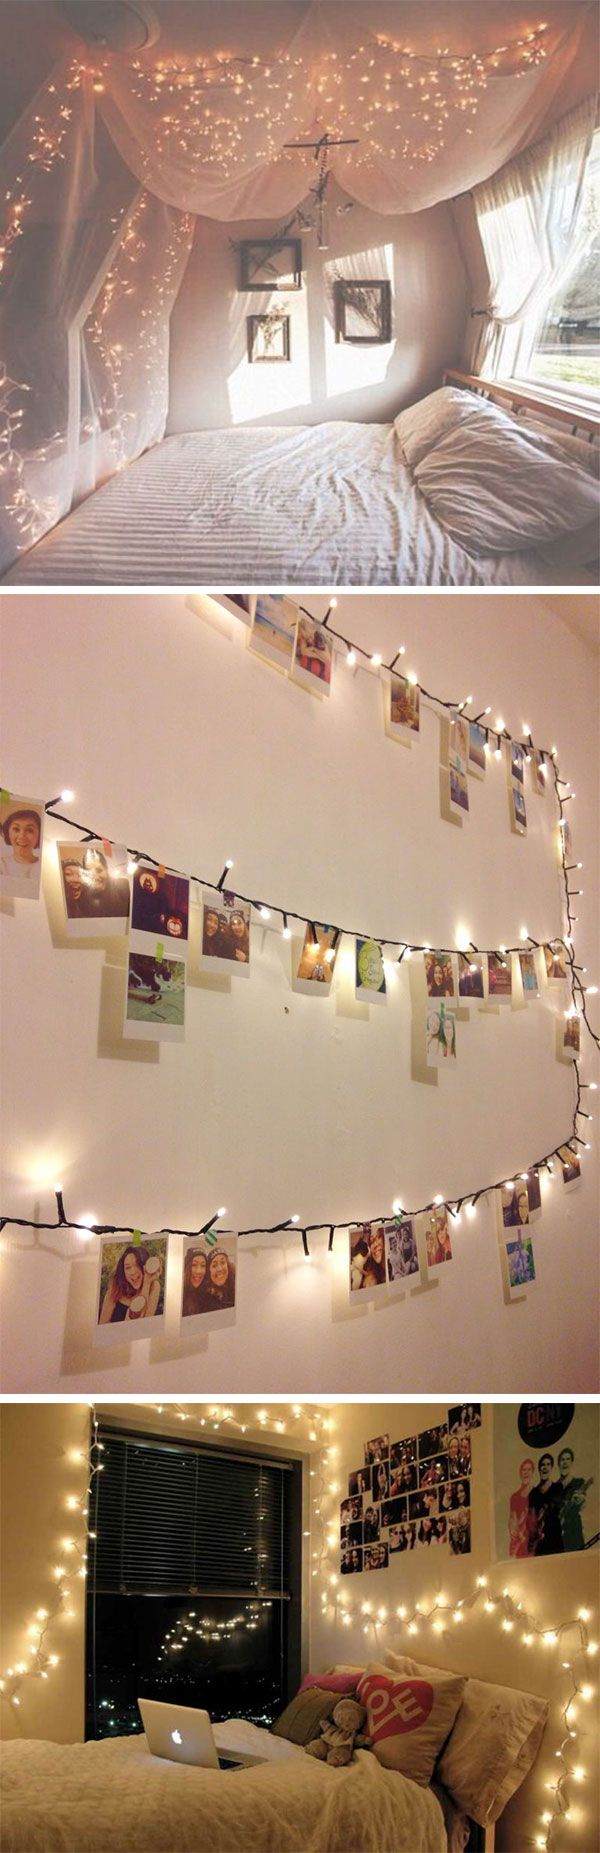 Awesome 13 Ways To Use Fairy Lights To Make Your Home Look Magical